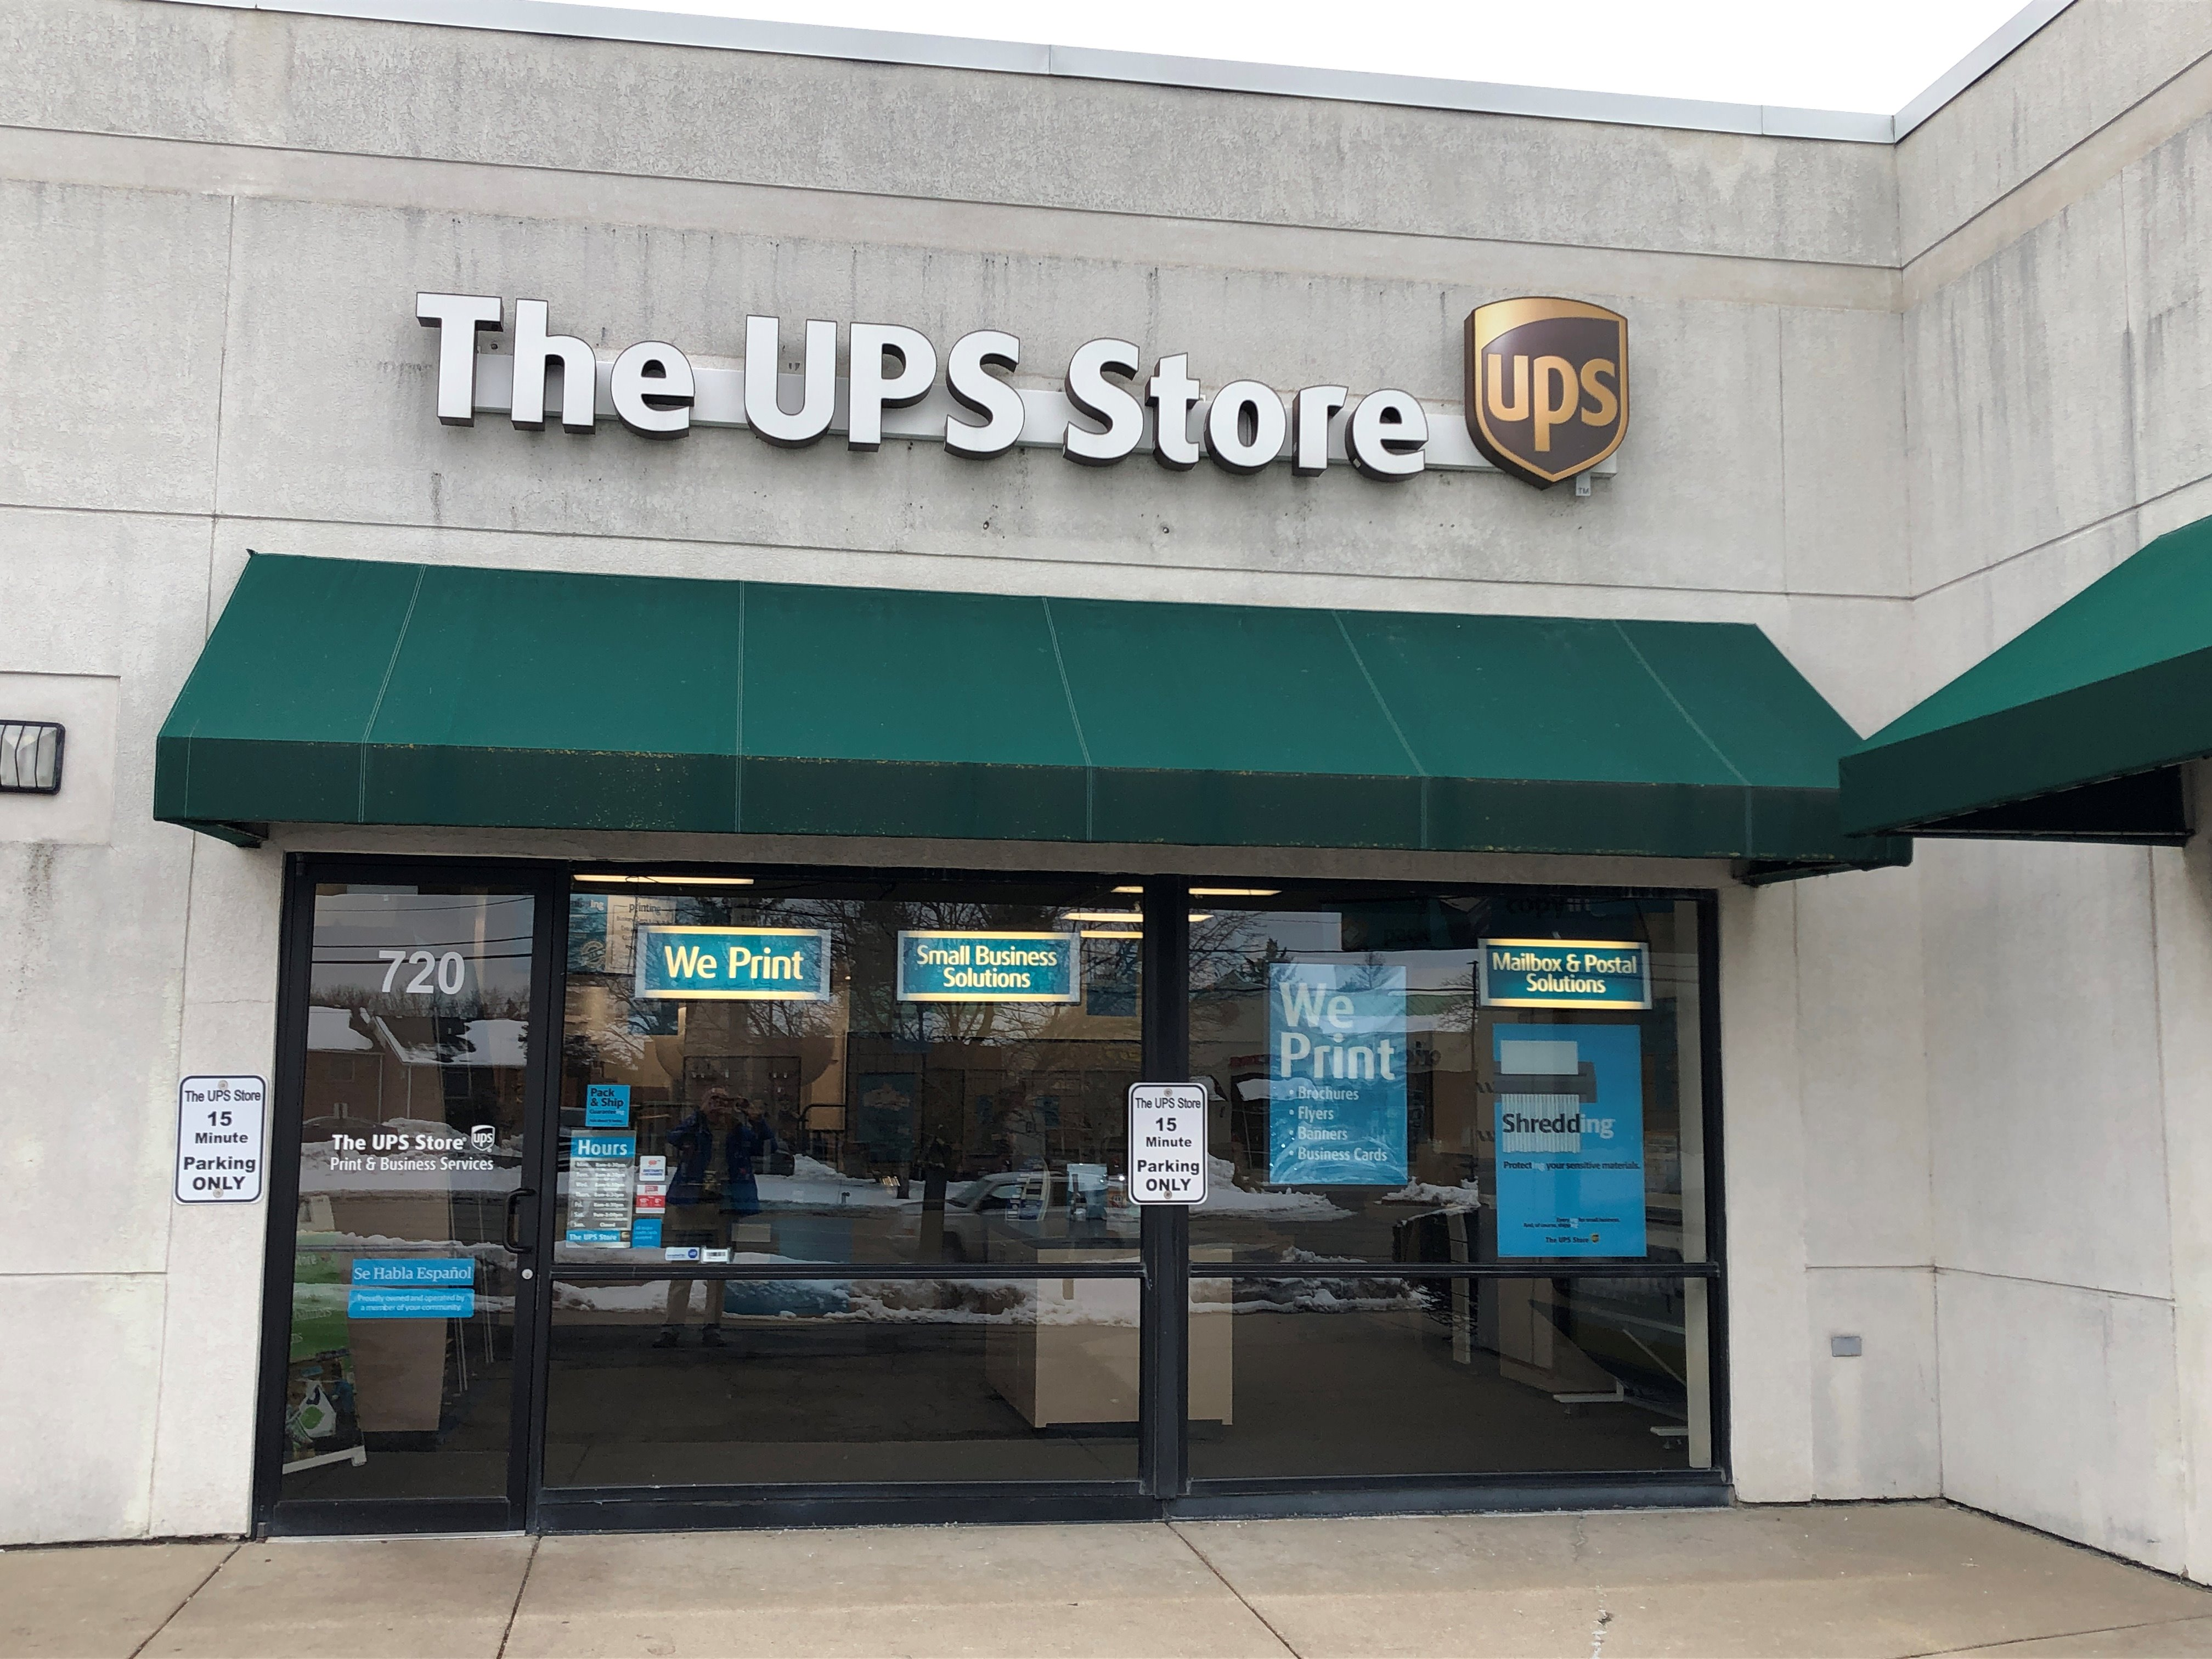 Facade of The UPS Store Woodstock